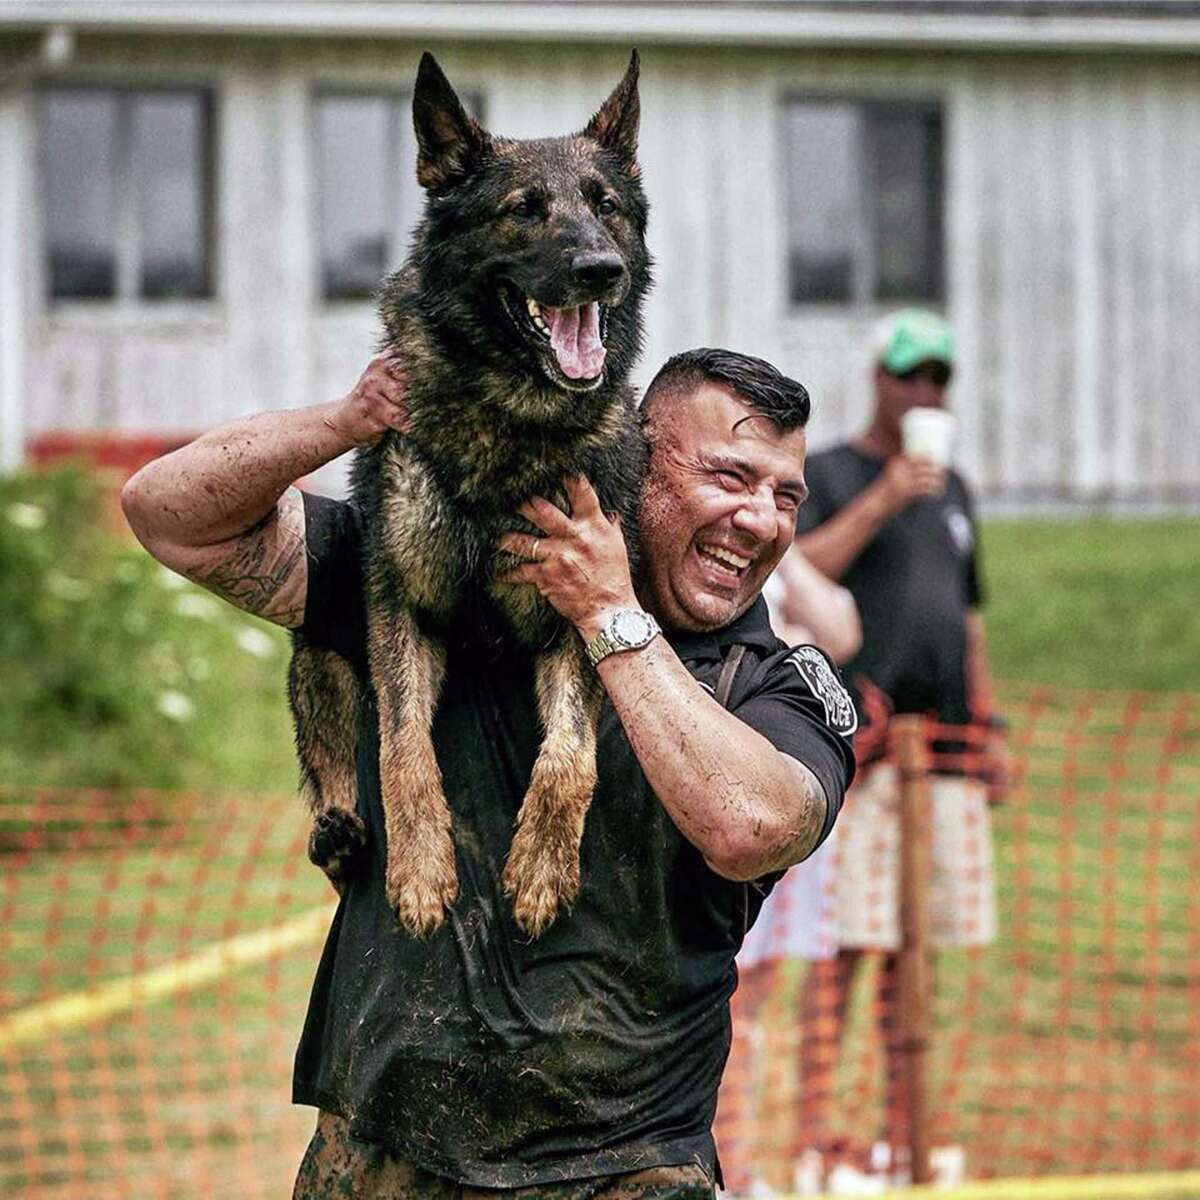 The 27th annual Connecticut K-9 Olympics will take place in Enfield, Conn., on Saturday, July 28, 2018.